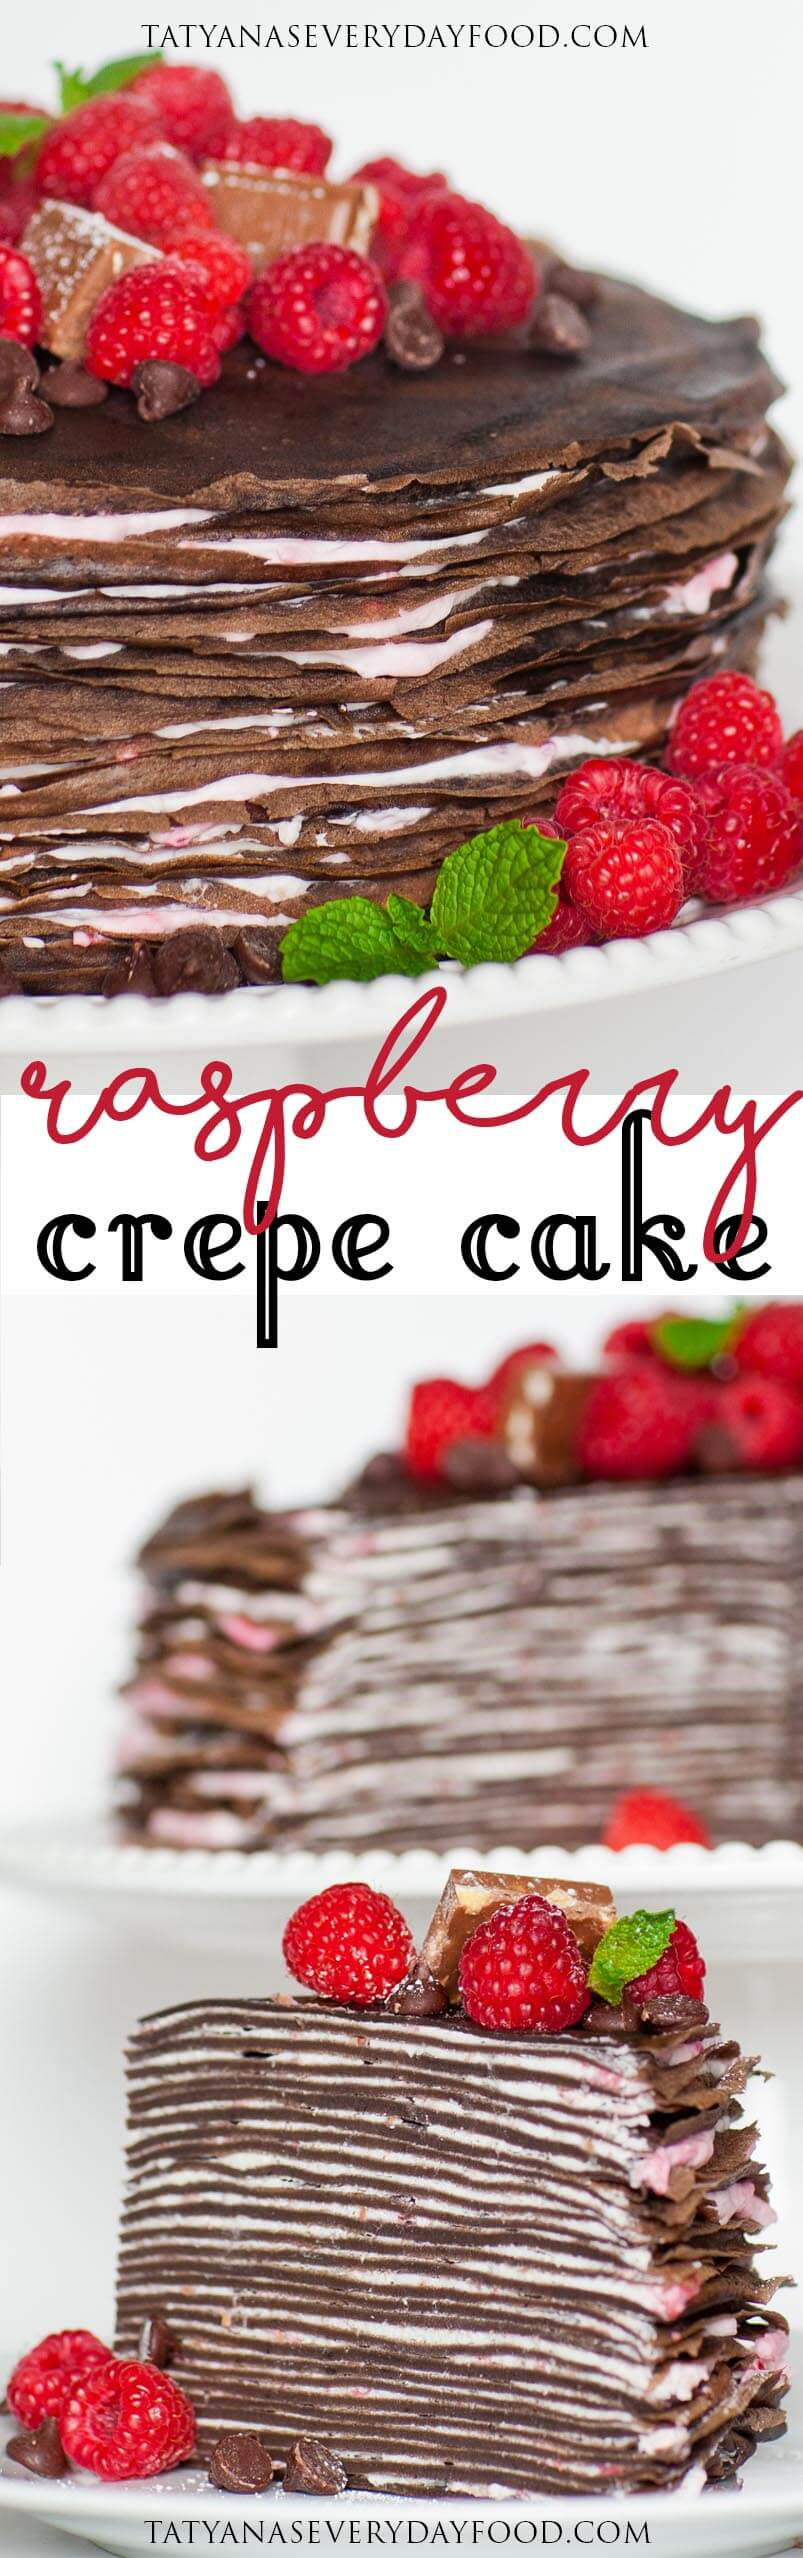 Chocolate Raspberry Crepe Cake recipe with video